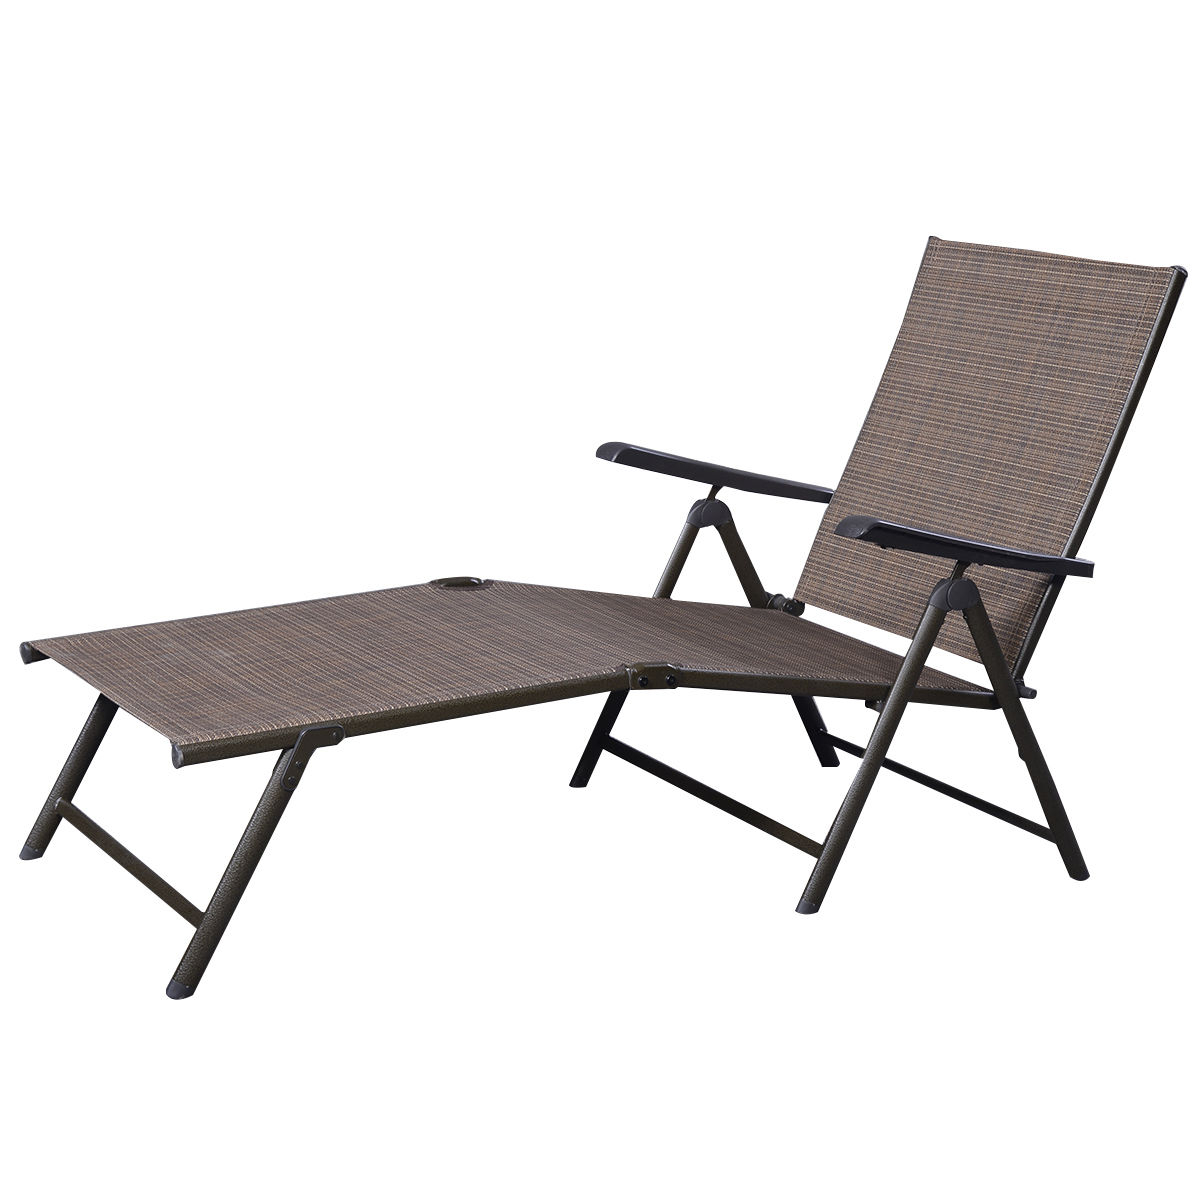 Outdoor Adjustable Chaise Lounge Chair With Regard To Most Popular Fabric Reclining Outdoor Chaise Lounges (Gallery 13 of 25)